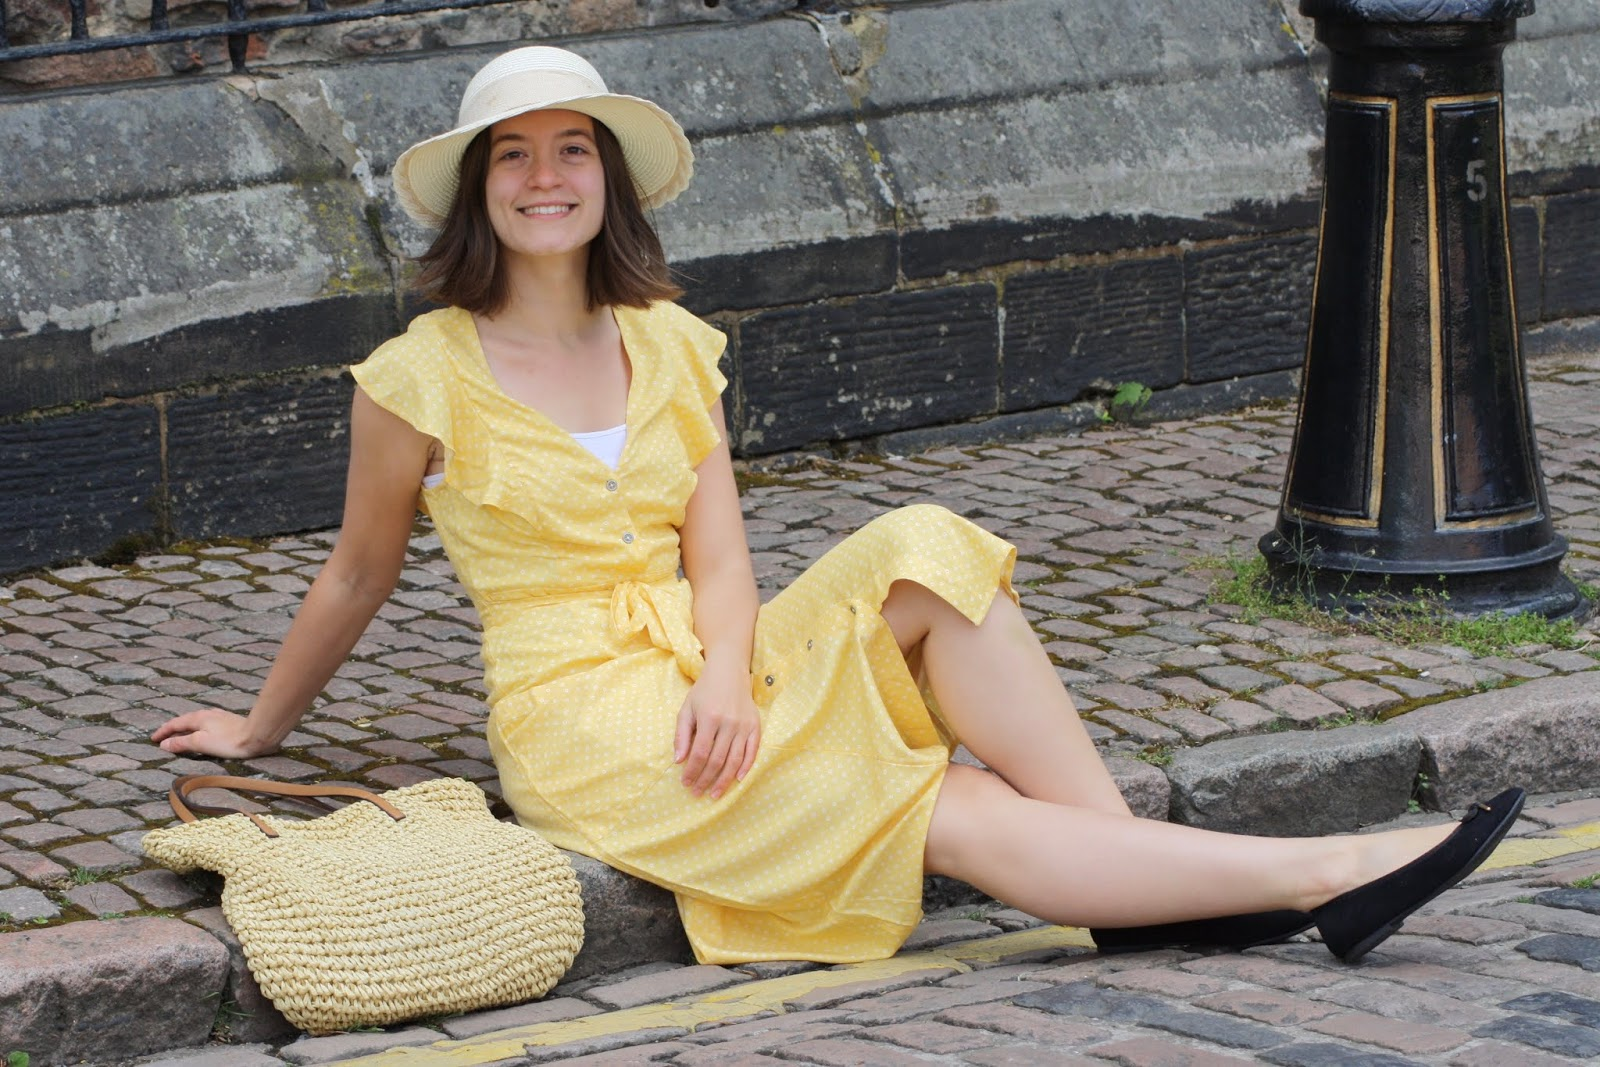 Abbey, seated on the pavement, wears a yellow floaty dress with cap sleeves, a straw handbag next to her